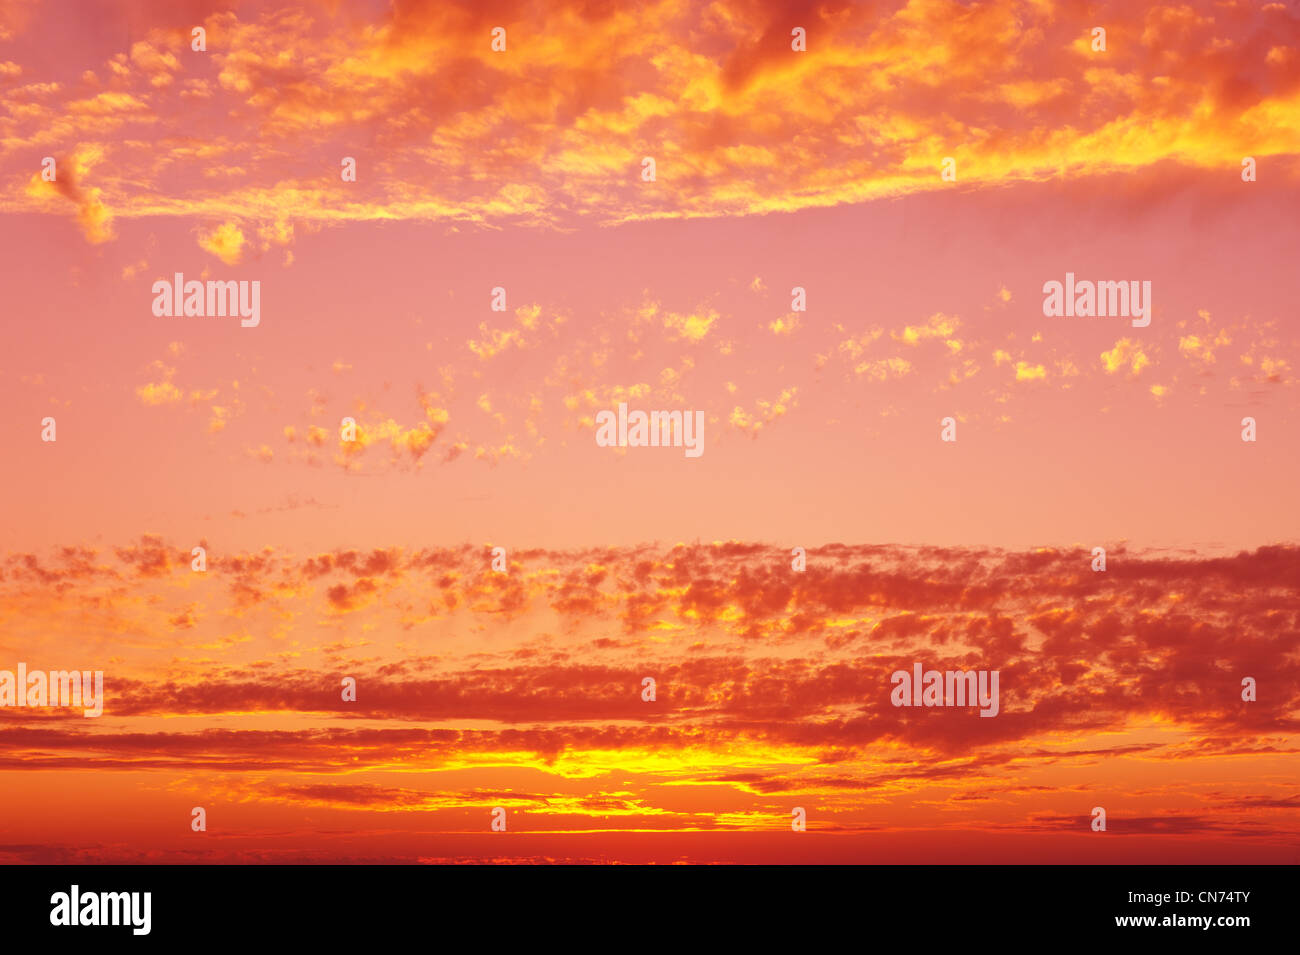 Sunset sky background in yellow and pink hues. Stock Photo